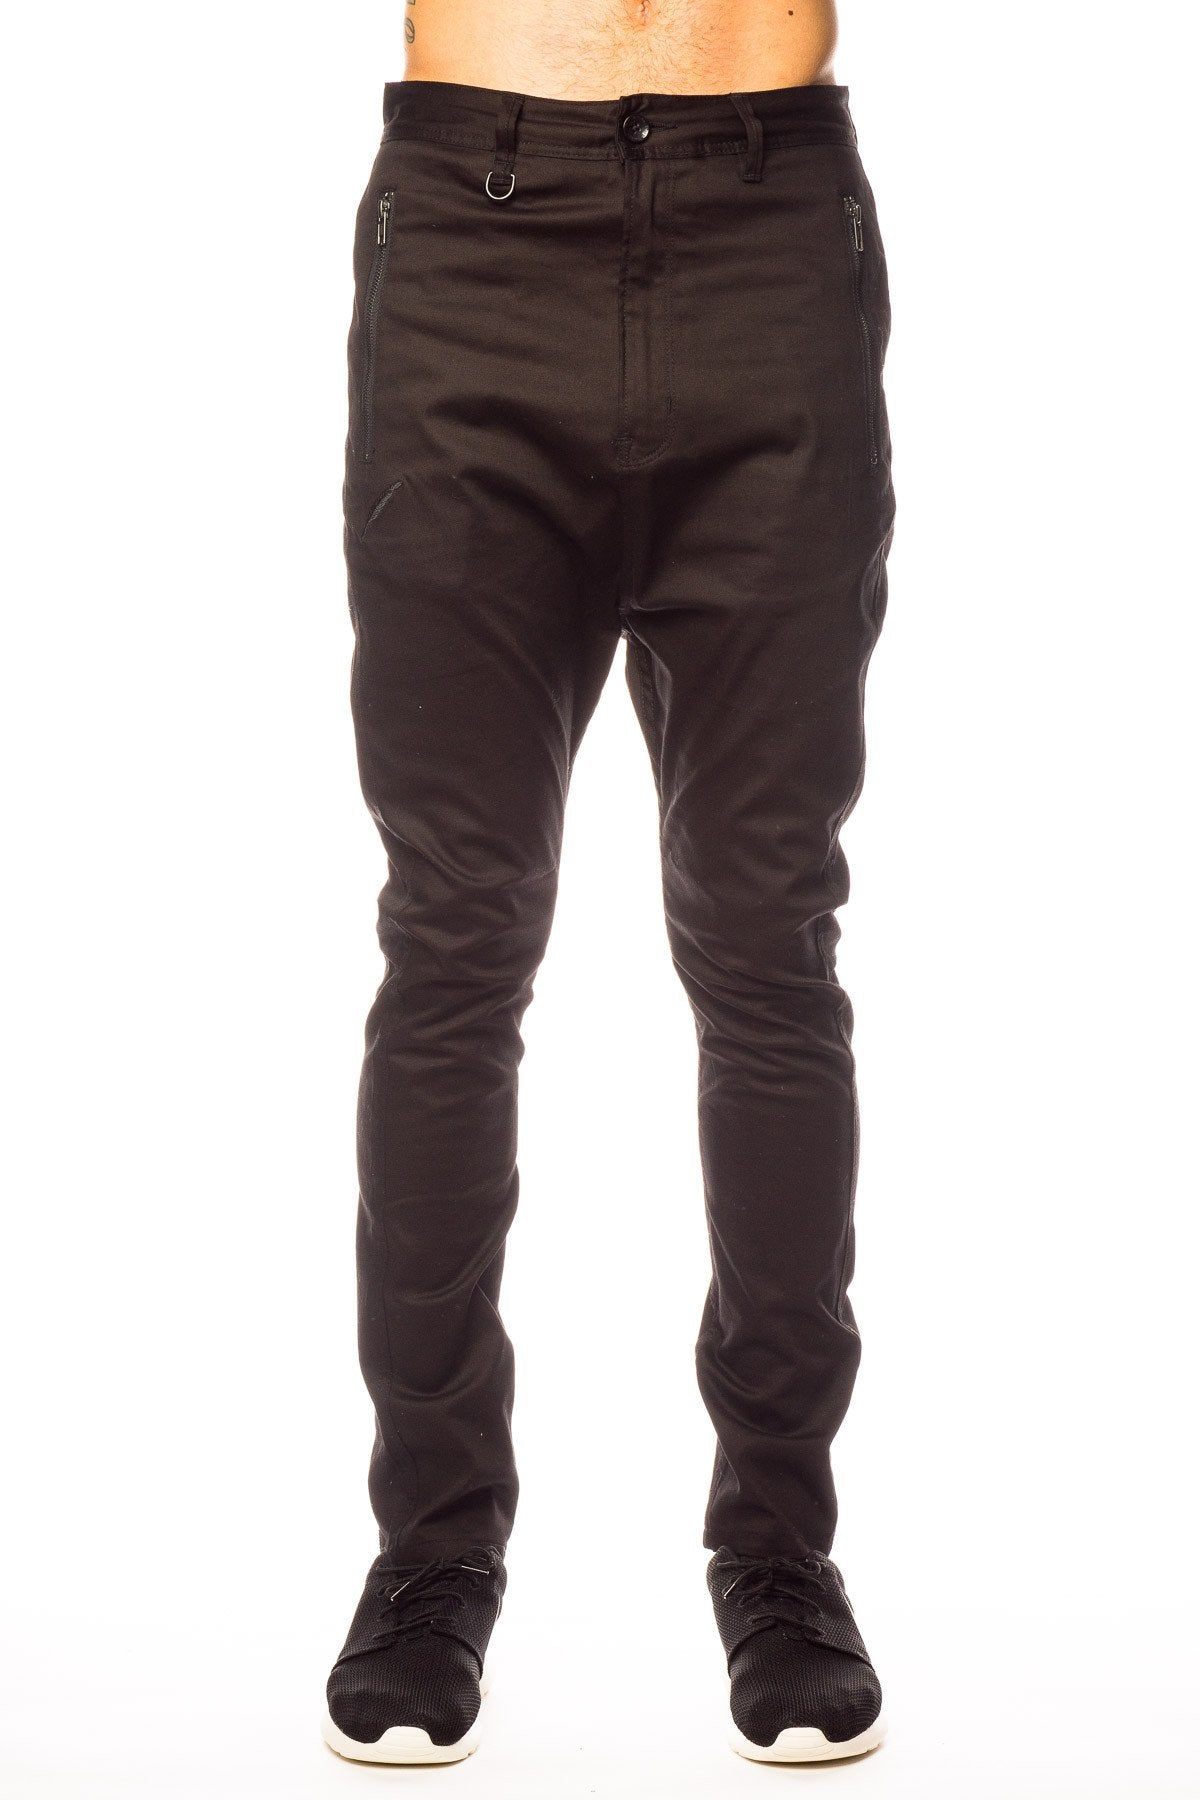 Bottoms - Publish Wyn Drop Stack Black Pant